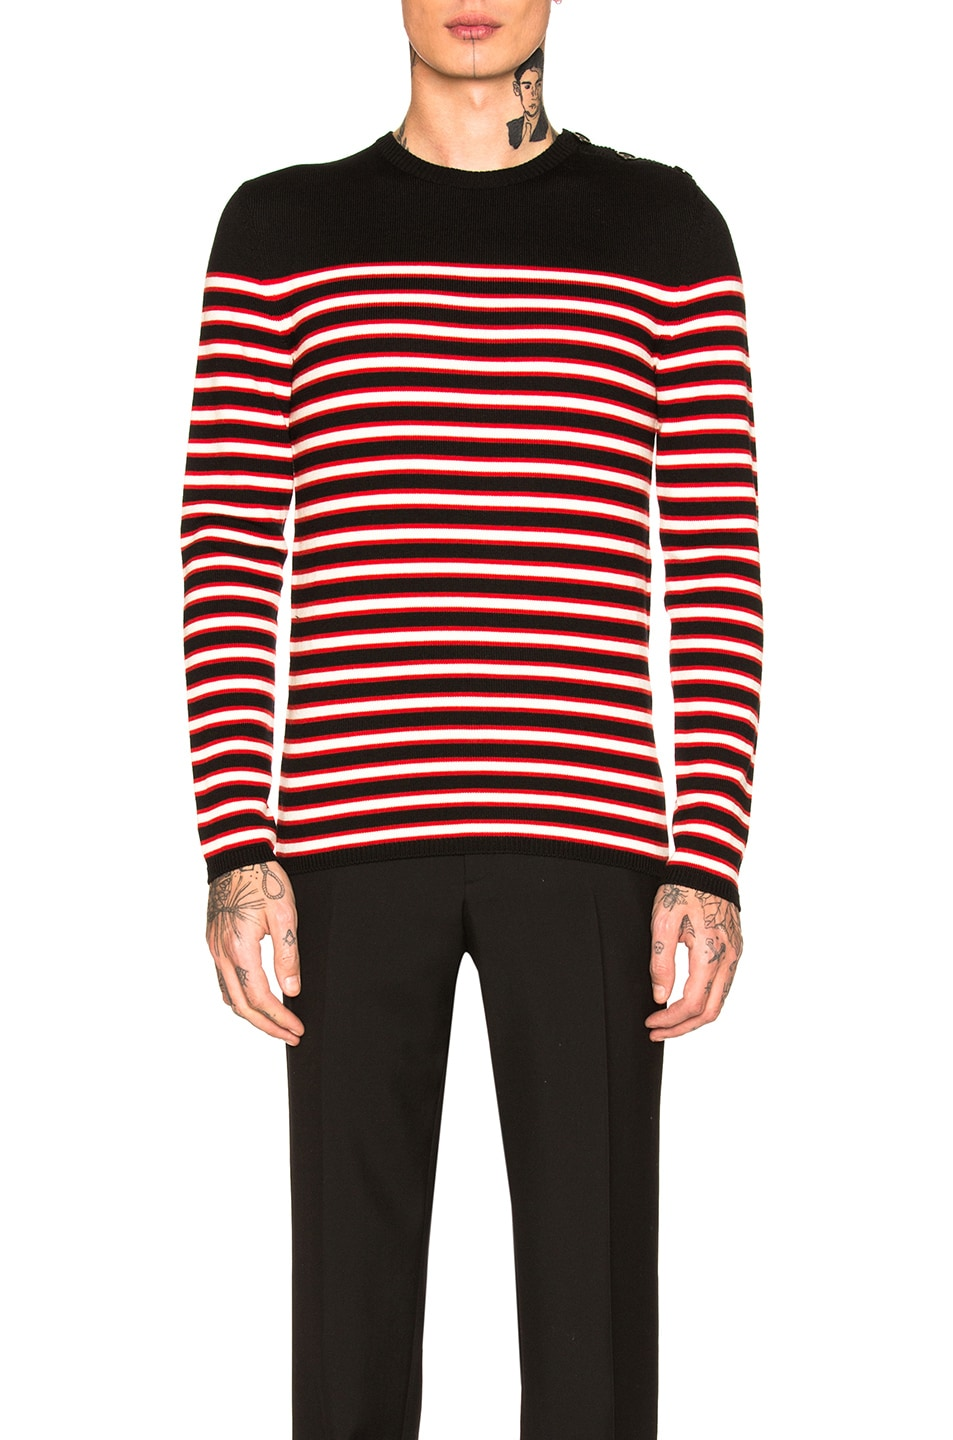 b69db0d76063 Image 1 of Saint Laurent Striped Cashmere Sweater in Black